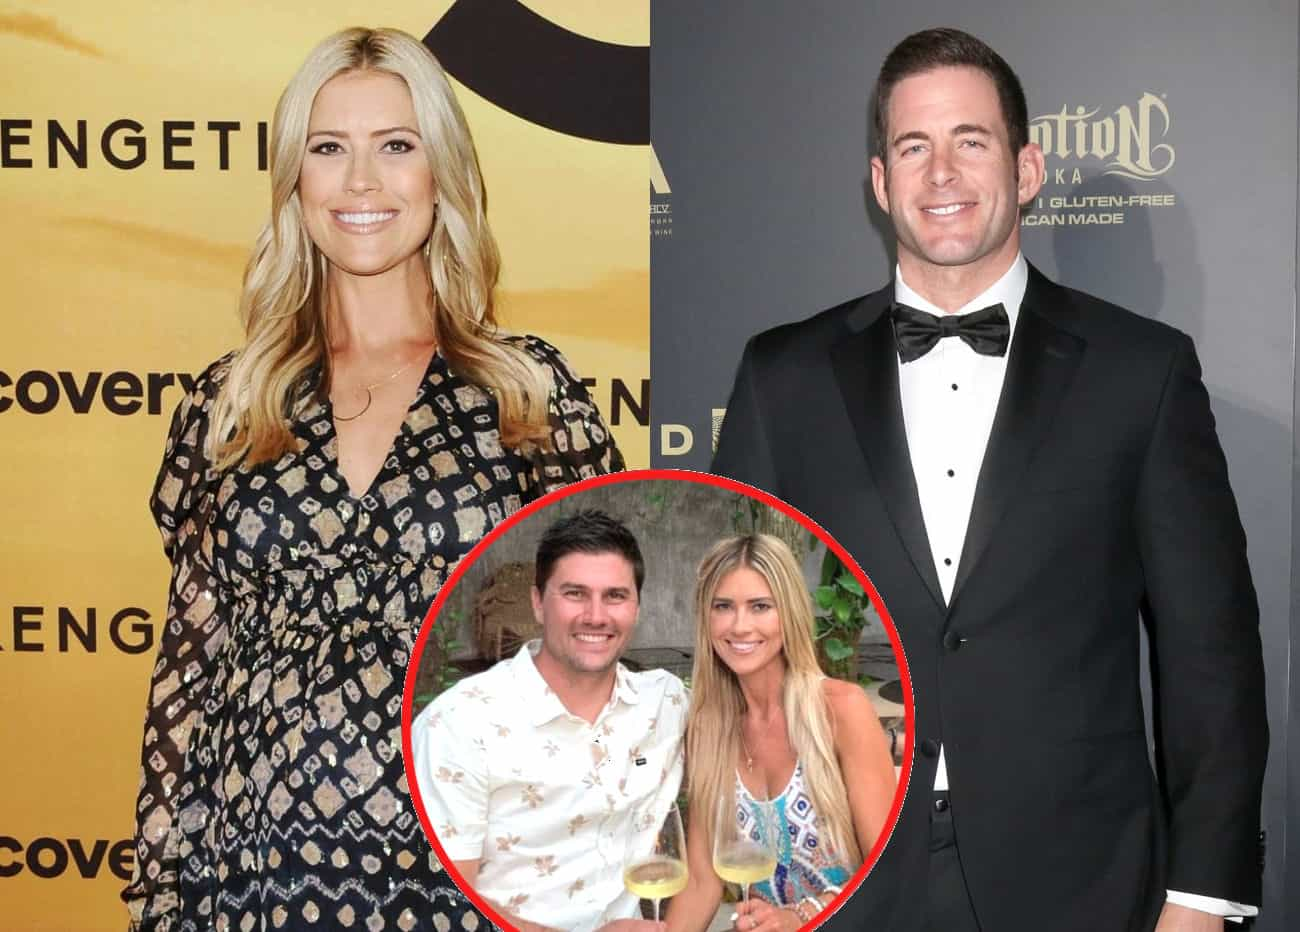 Christina Haack Breaks Silence About Failed Relationships Following Report Ex-Husband Tarek El Moussa Lashed Out at Her on Set of Flip or Flop, She Debuts New Boyfriend